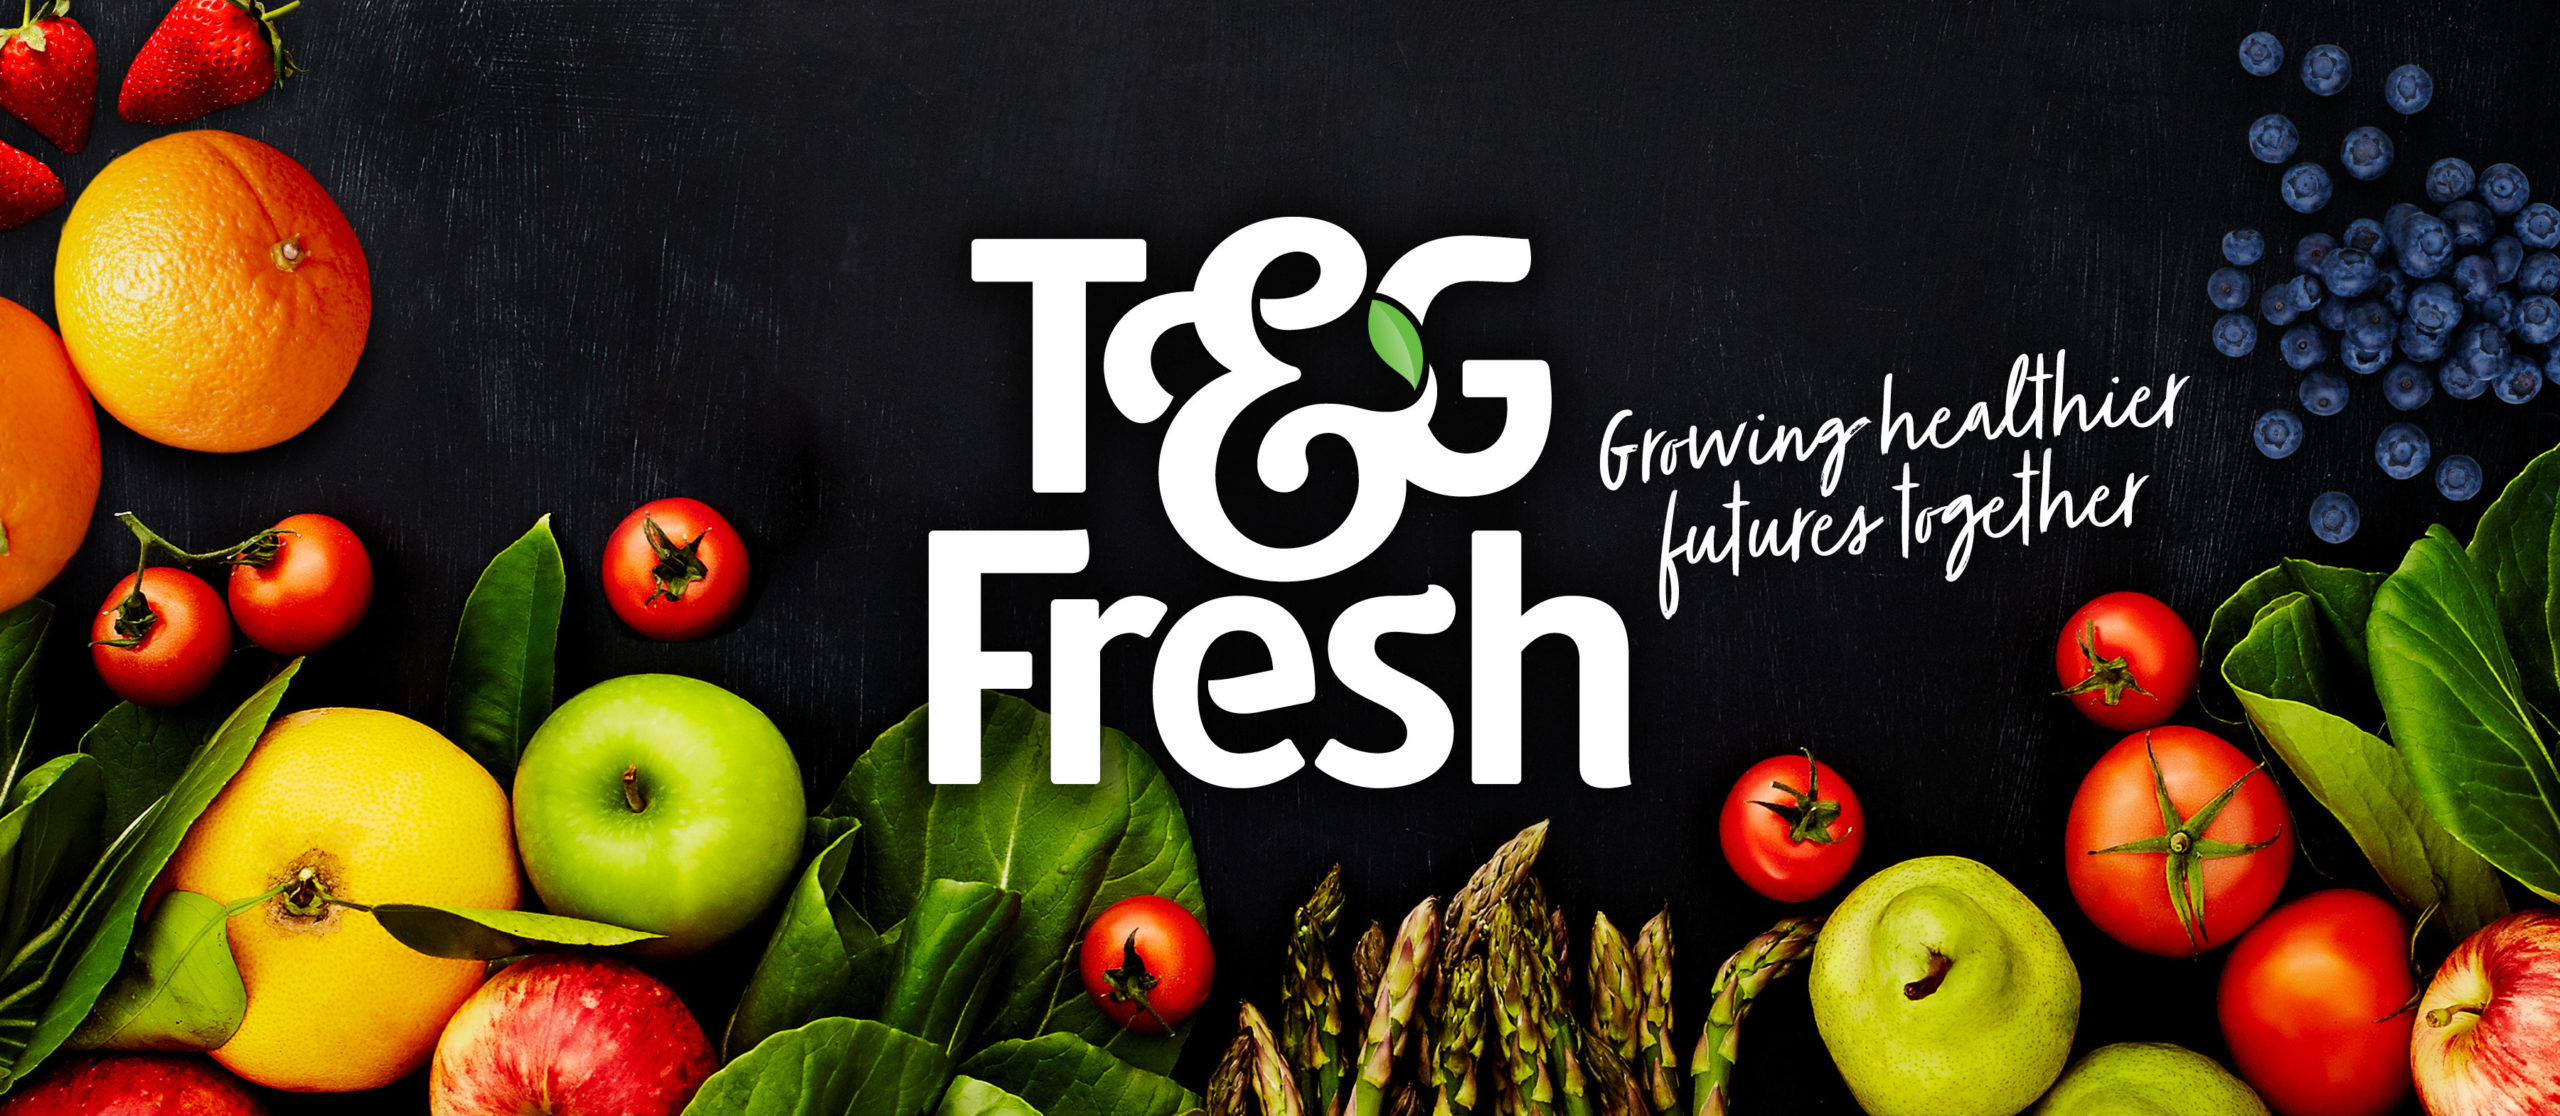 T&G Fresh Growing healthier futures together